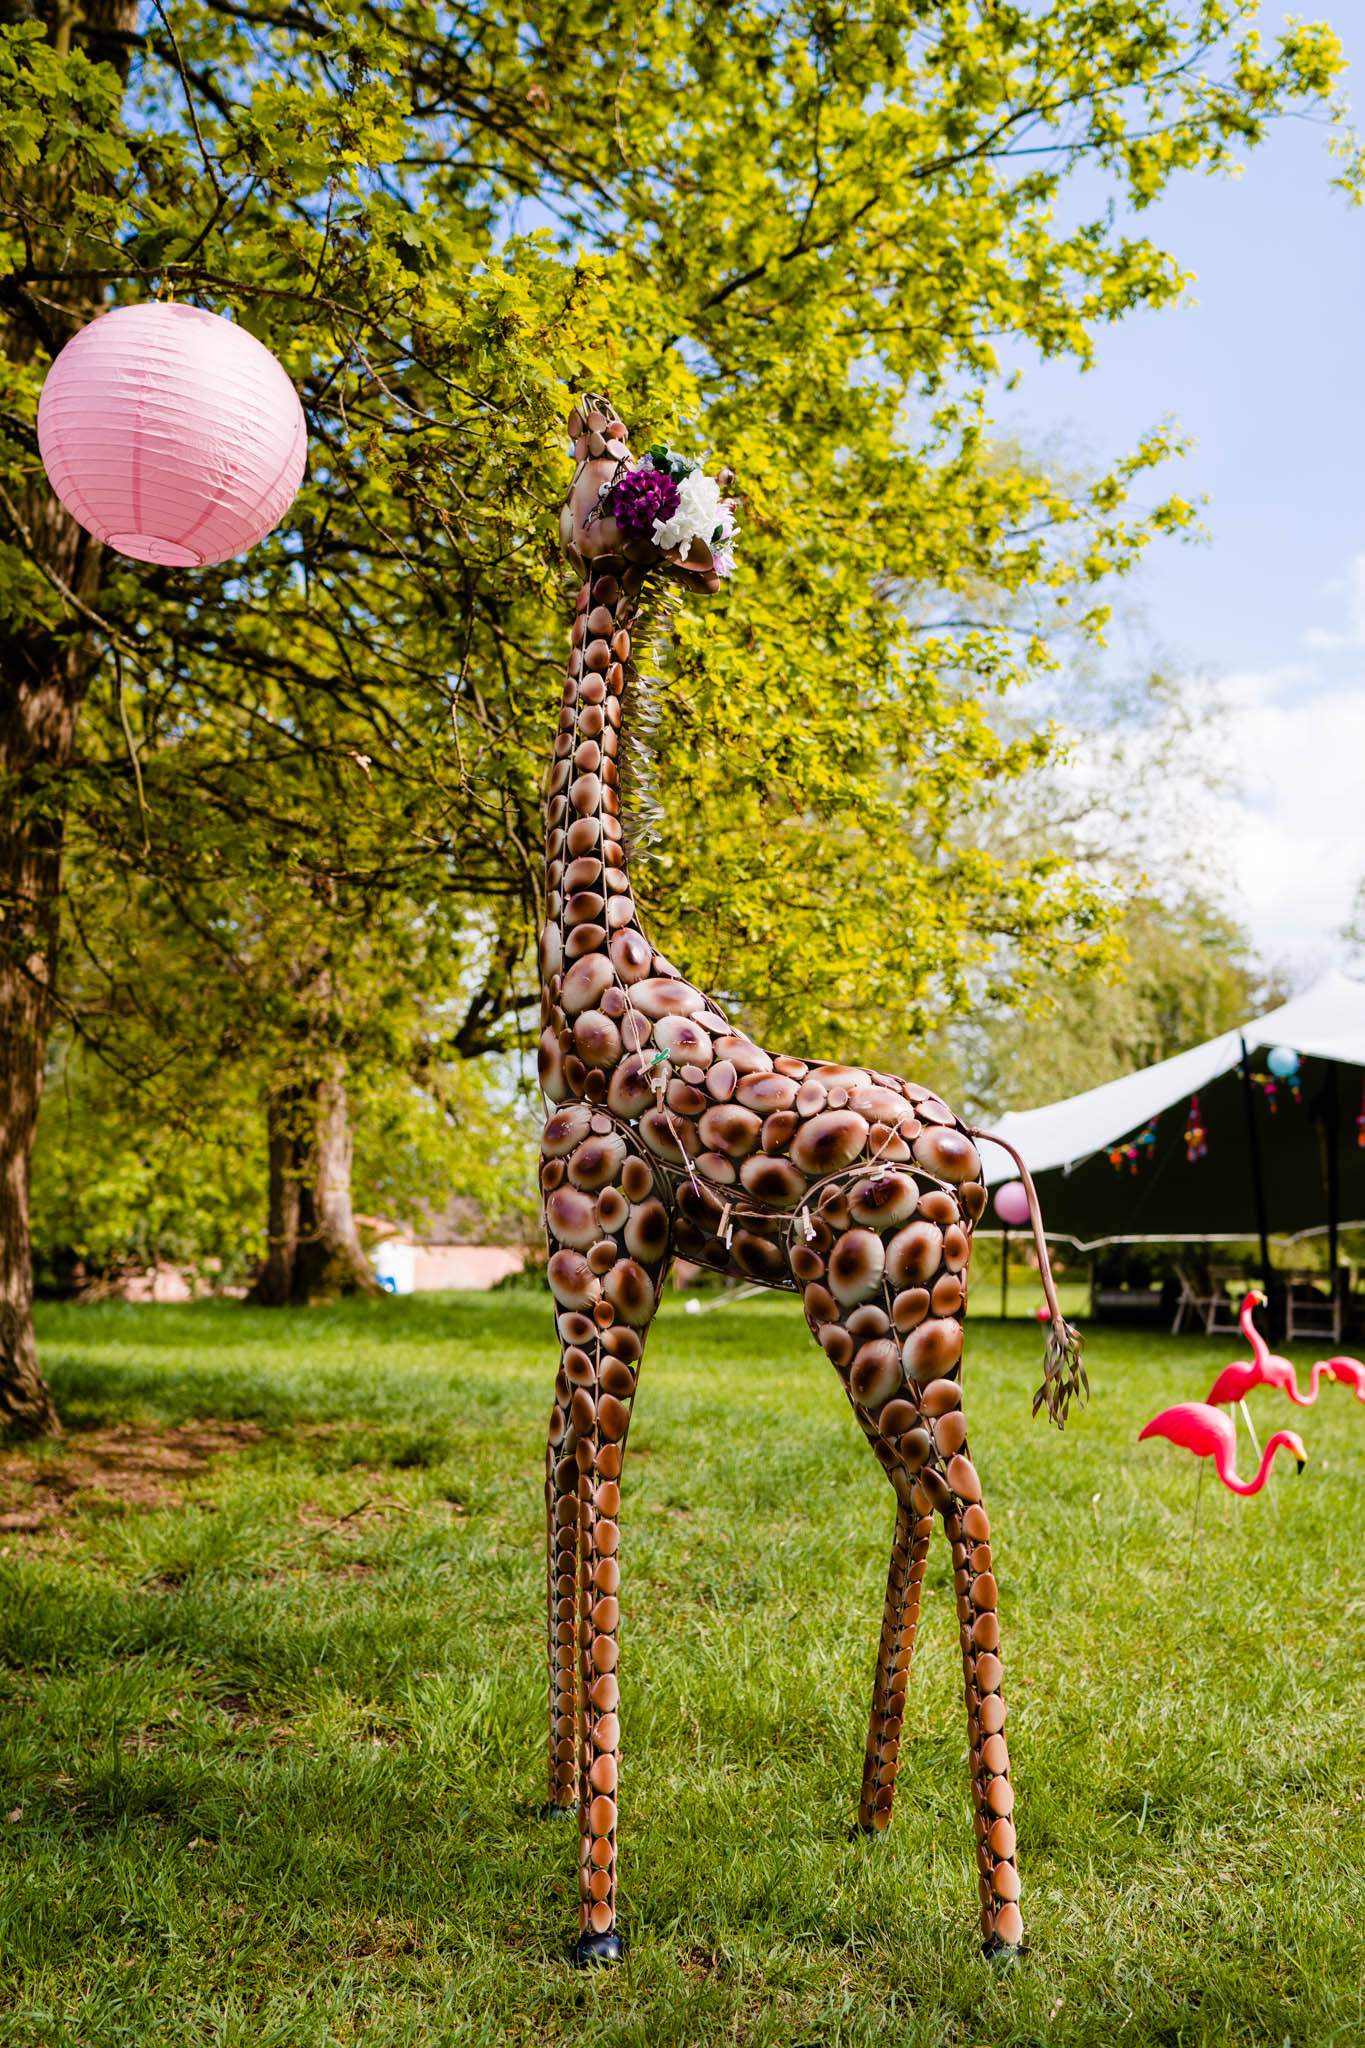 Giraffe available to hire from Wildly Wonderful Weddings -  https://wildlywonderful.co.uk/   Photography - Vicki Clayson Photography -  https://www.vickiclaysonphotography.com/